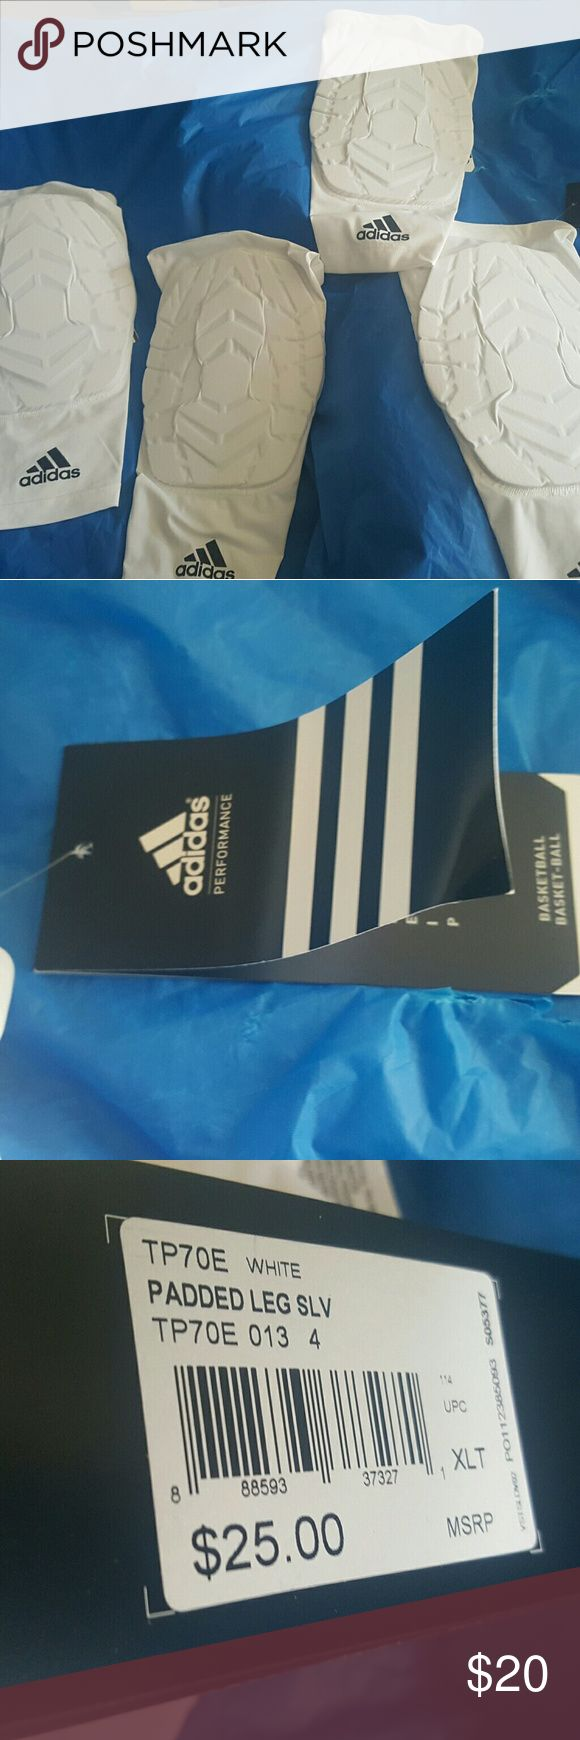 Adidas performance basketball padded leg sleeve Buy one,or buy a pair! Padded compression basketball leg sleeves,new with tags. Questions? ask me anything! adidas Other